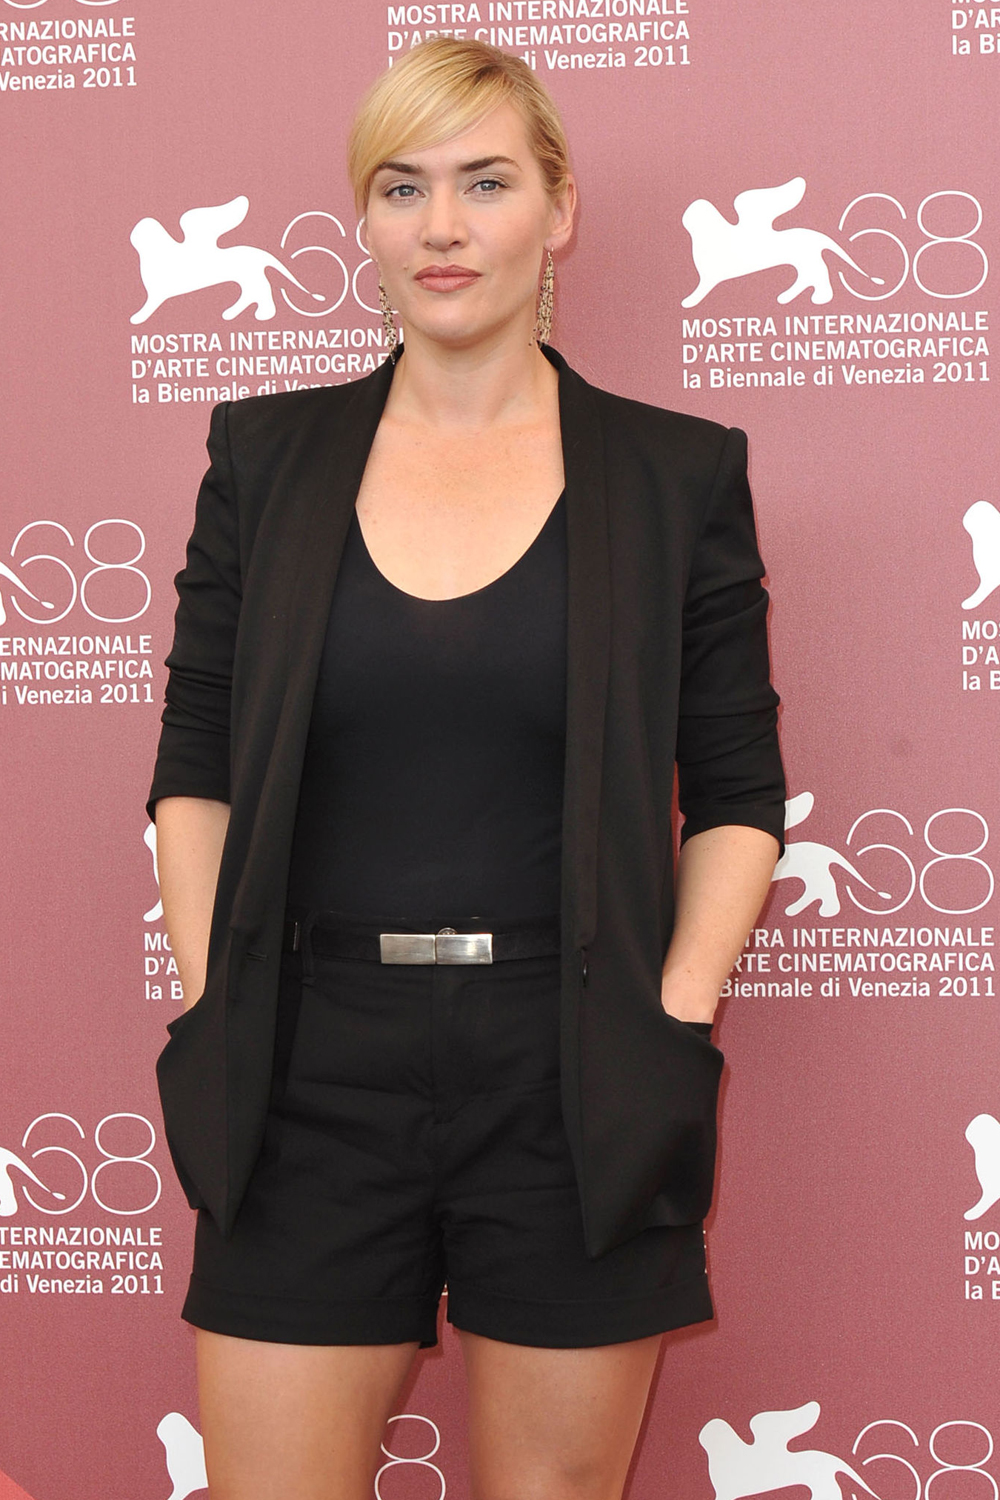 Kate winslet great body apologise, but